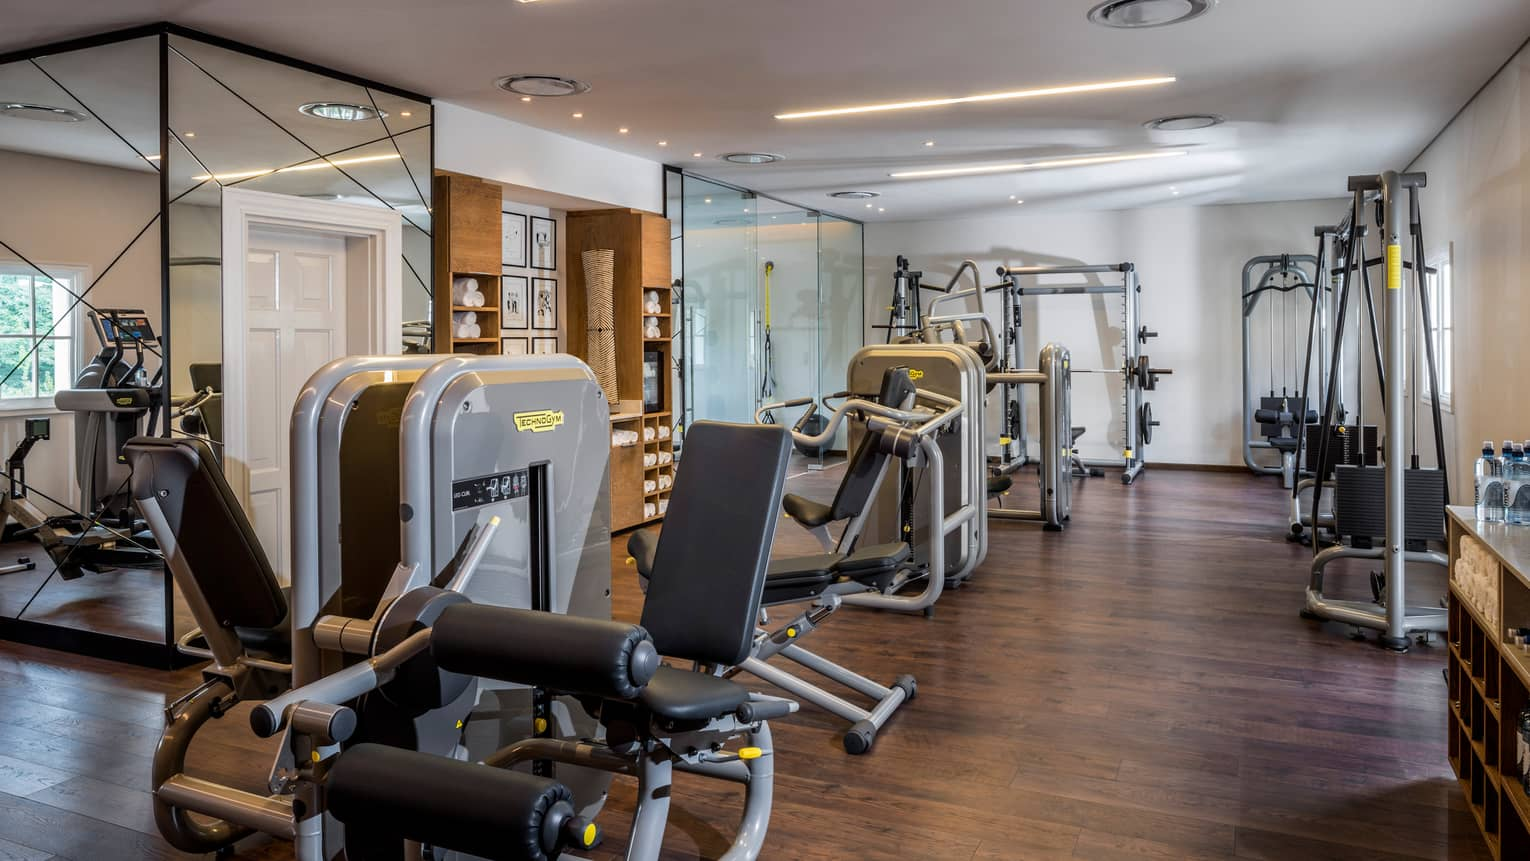 Cardio machines, weight presses in Fitness Centre